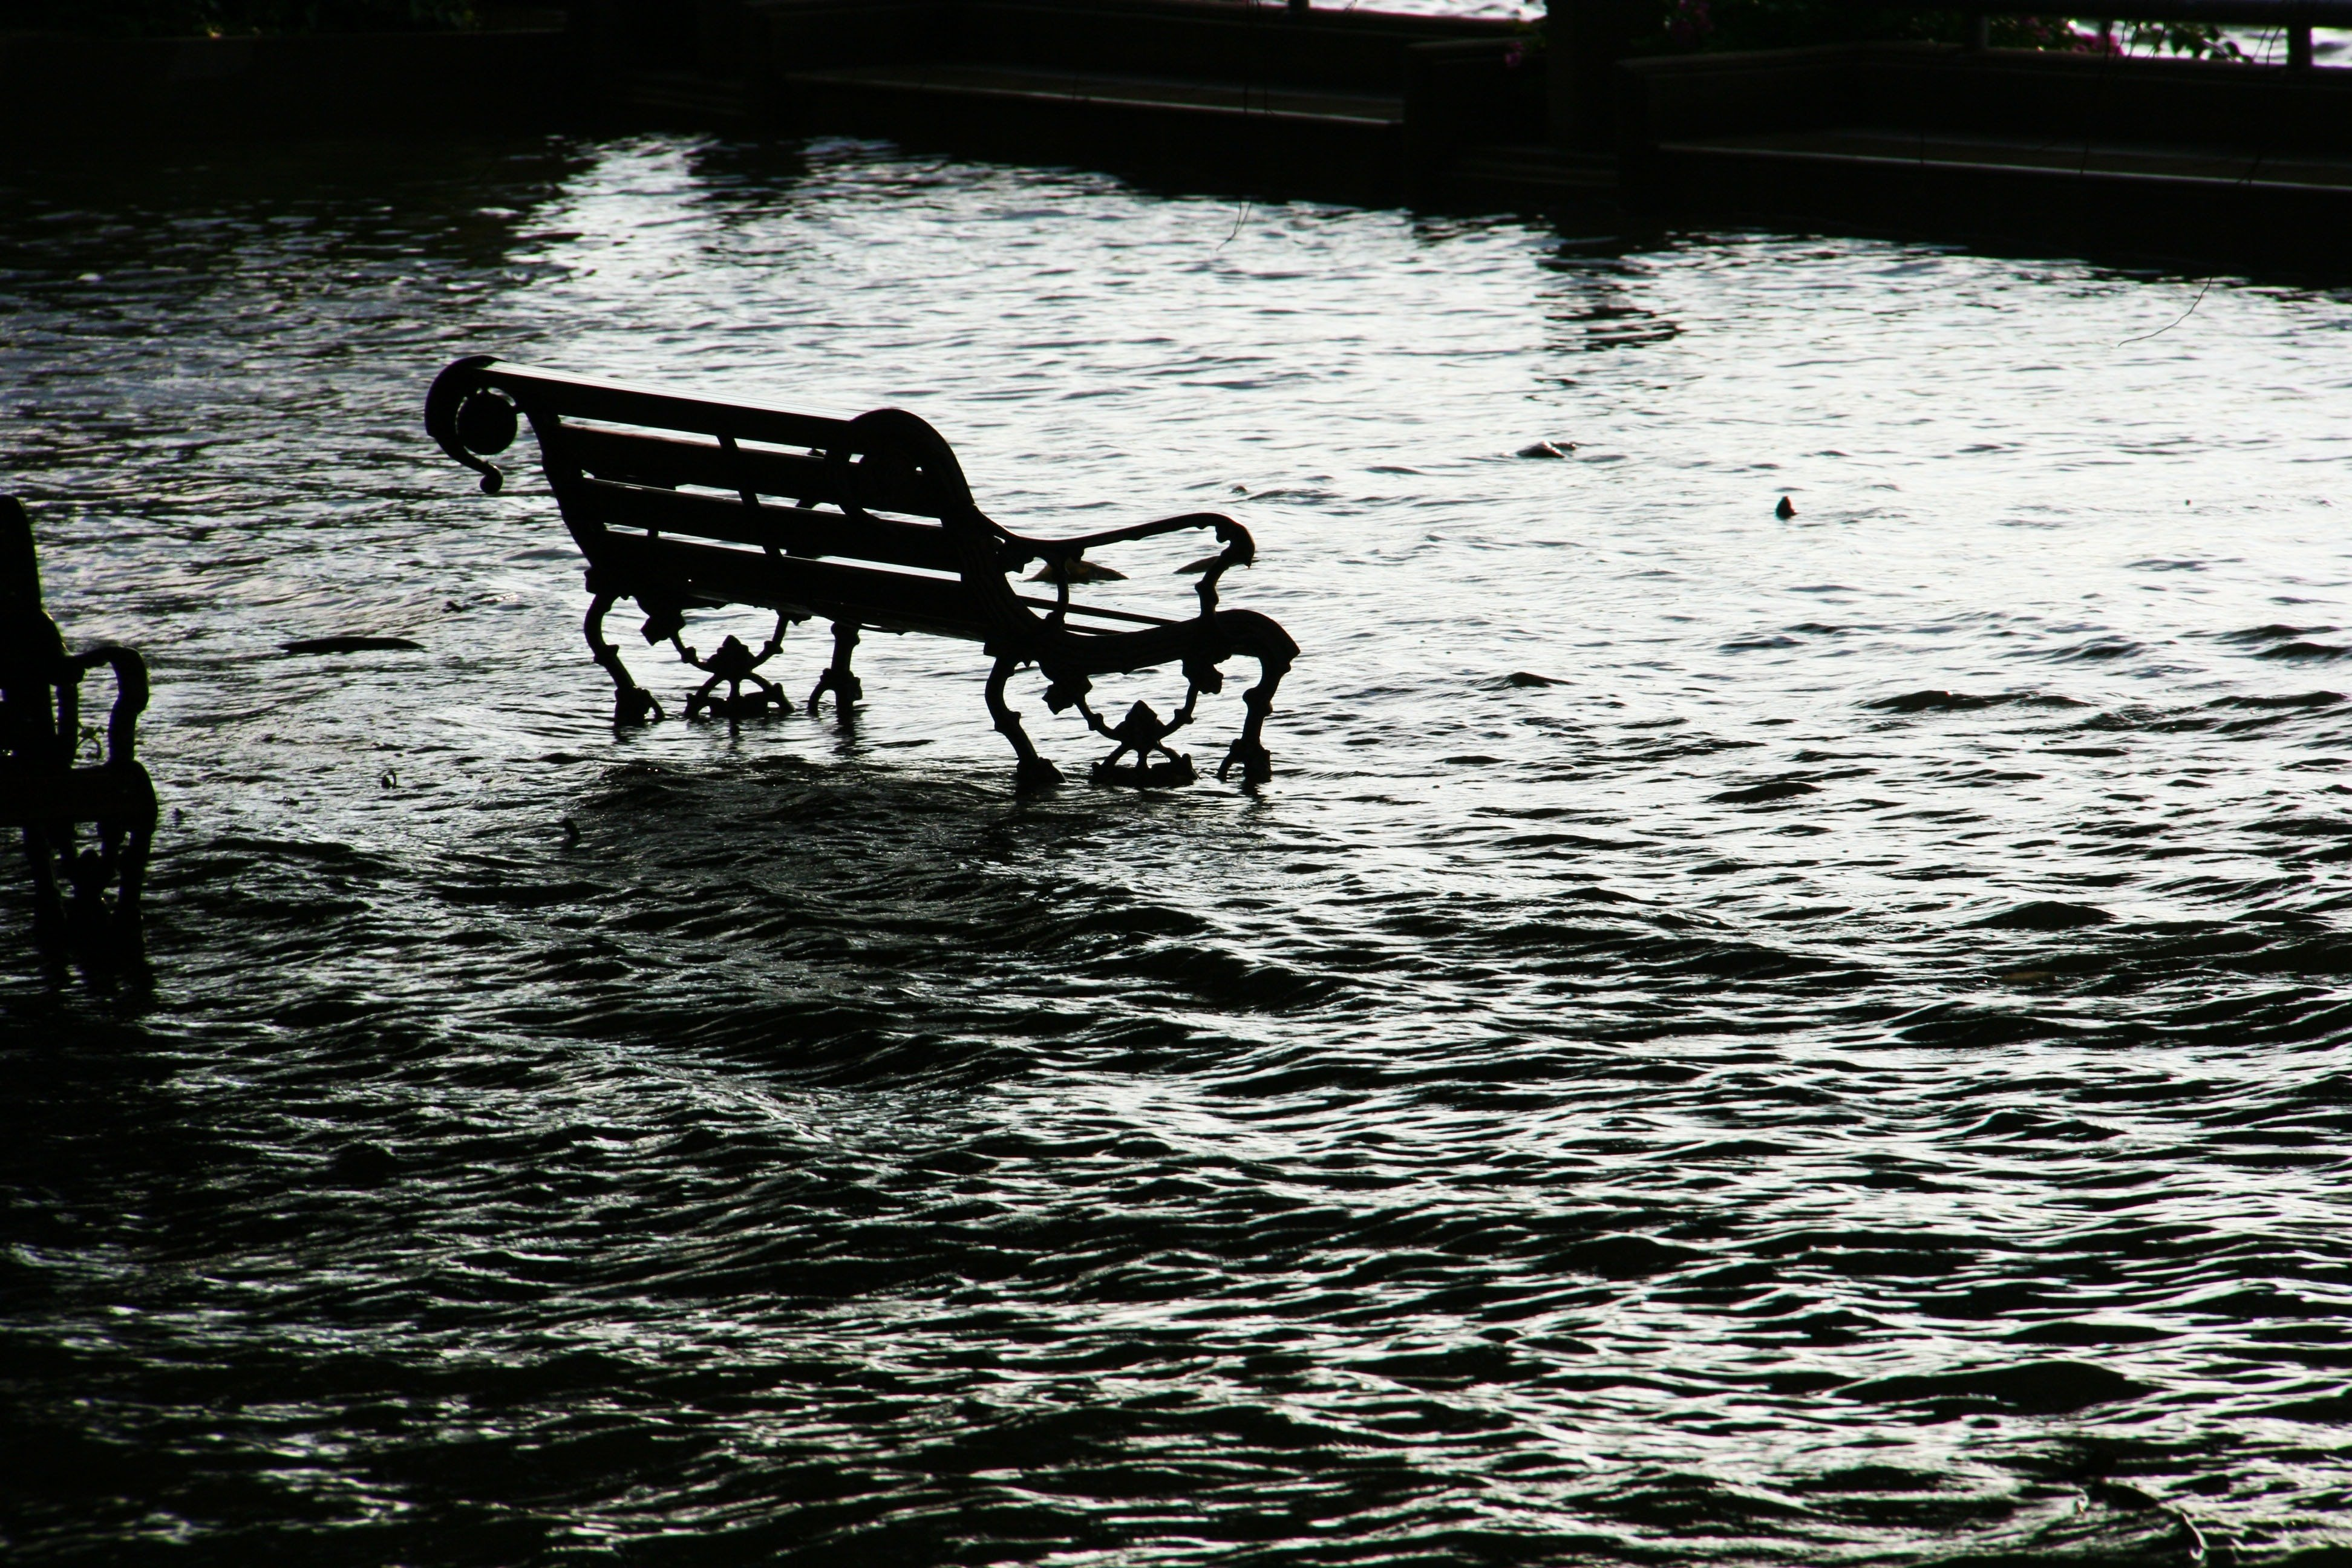 bench half submerged on water image Peakpx 3888x2592